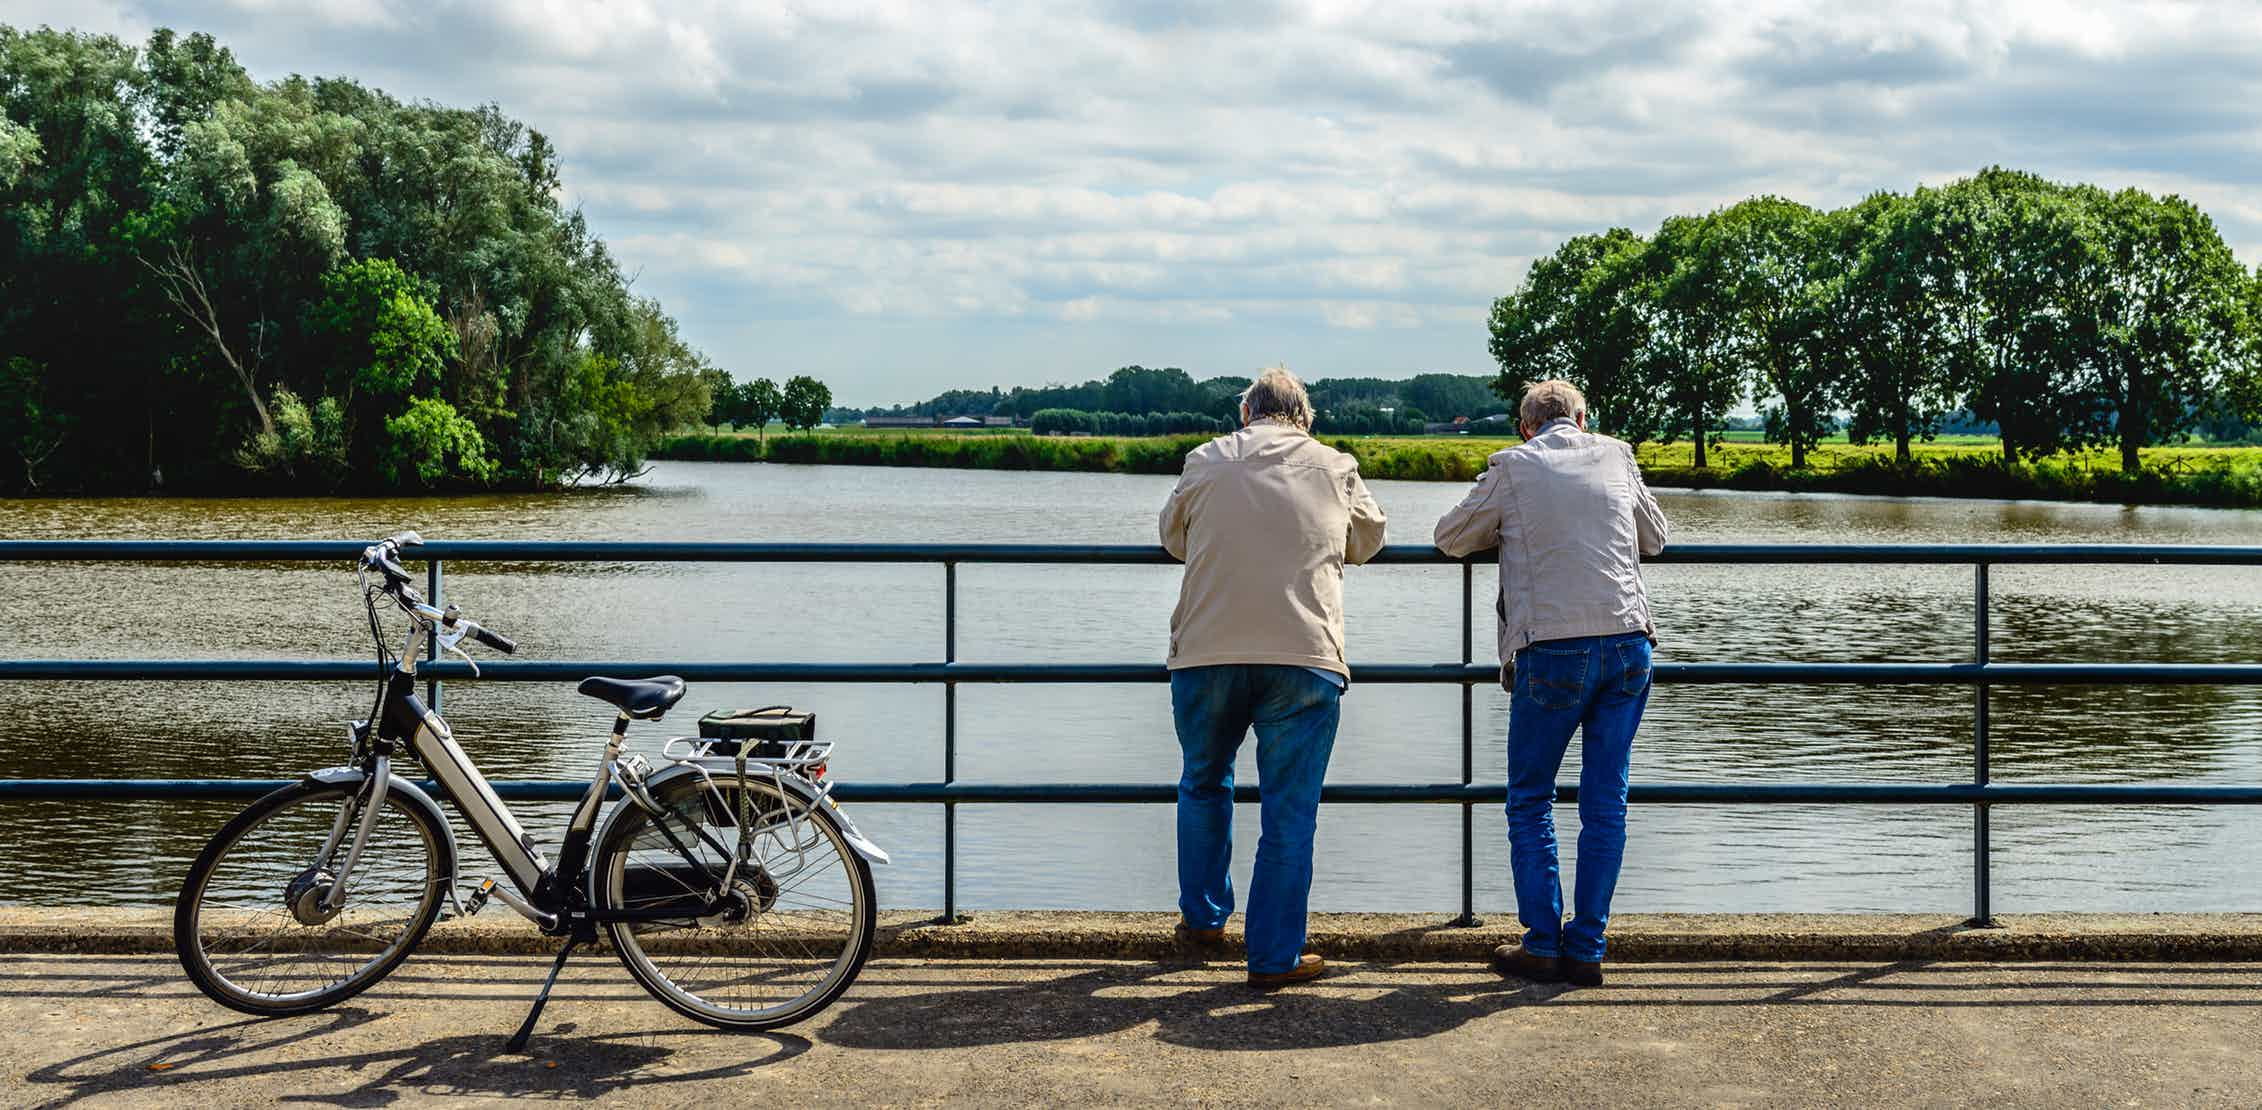 Electric bikes can boost older people's mental performance and well-being